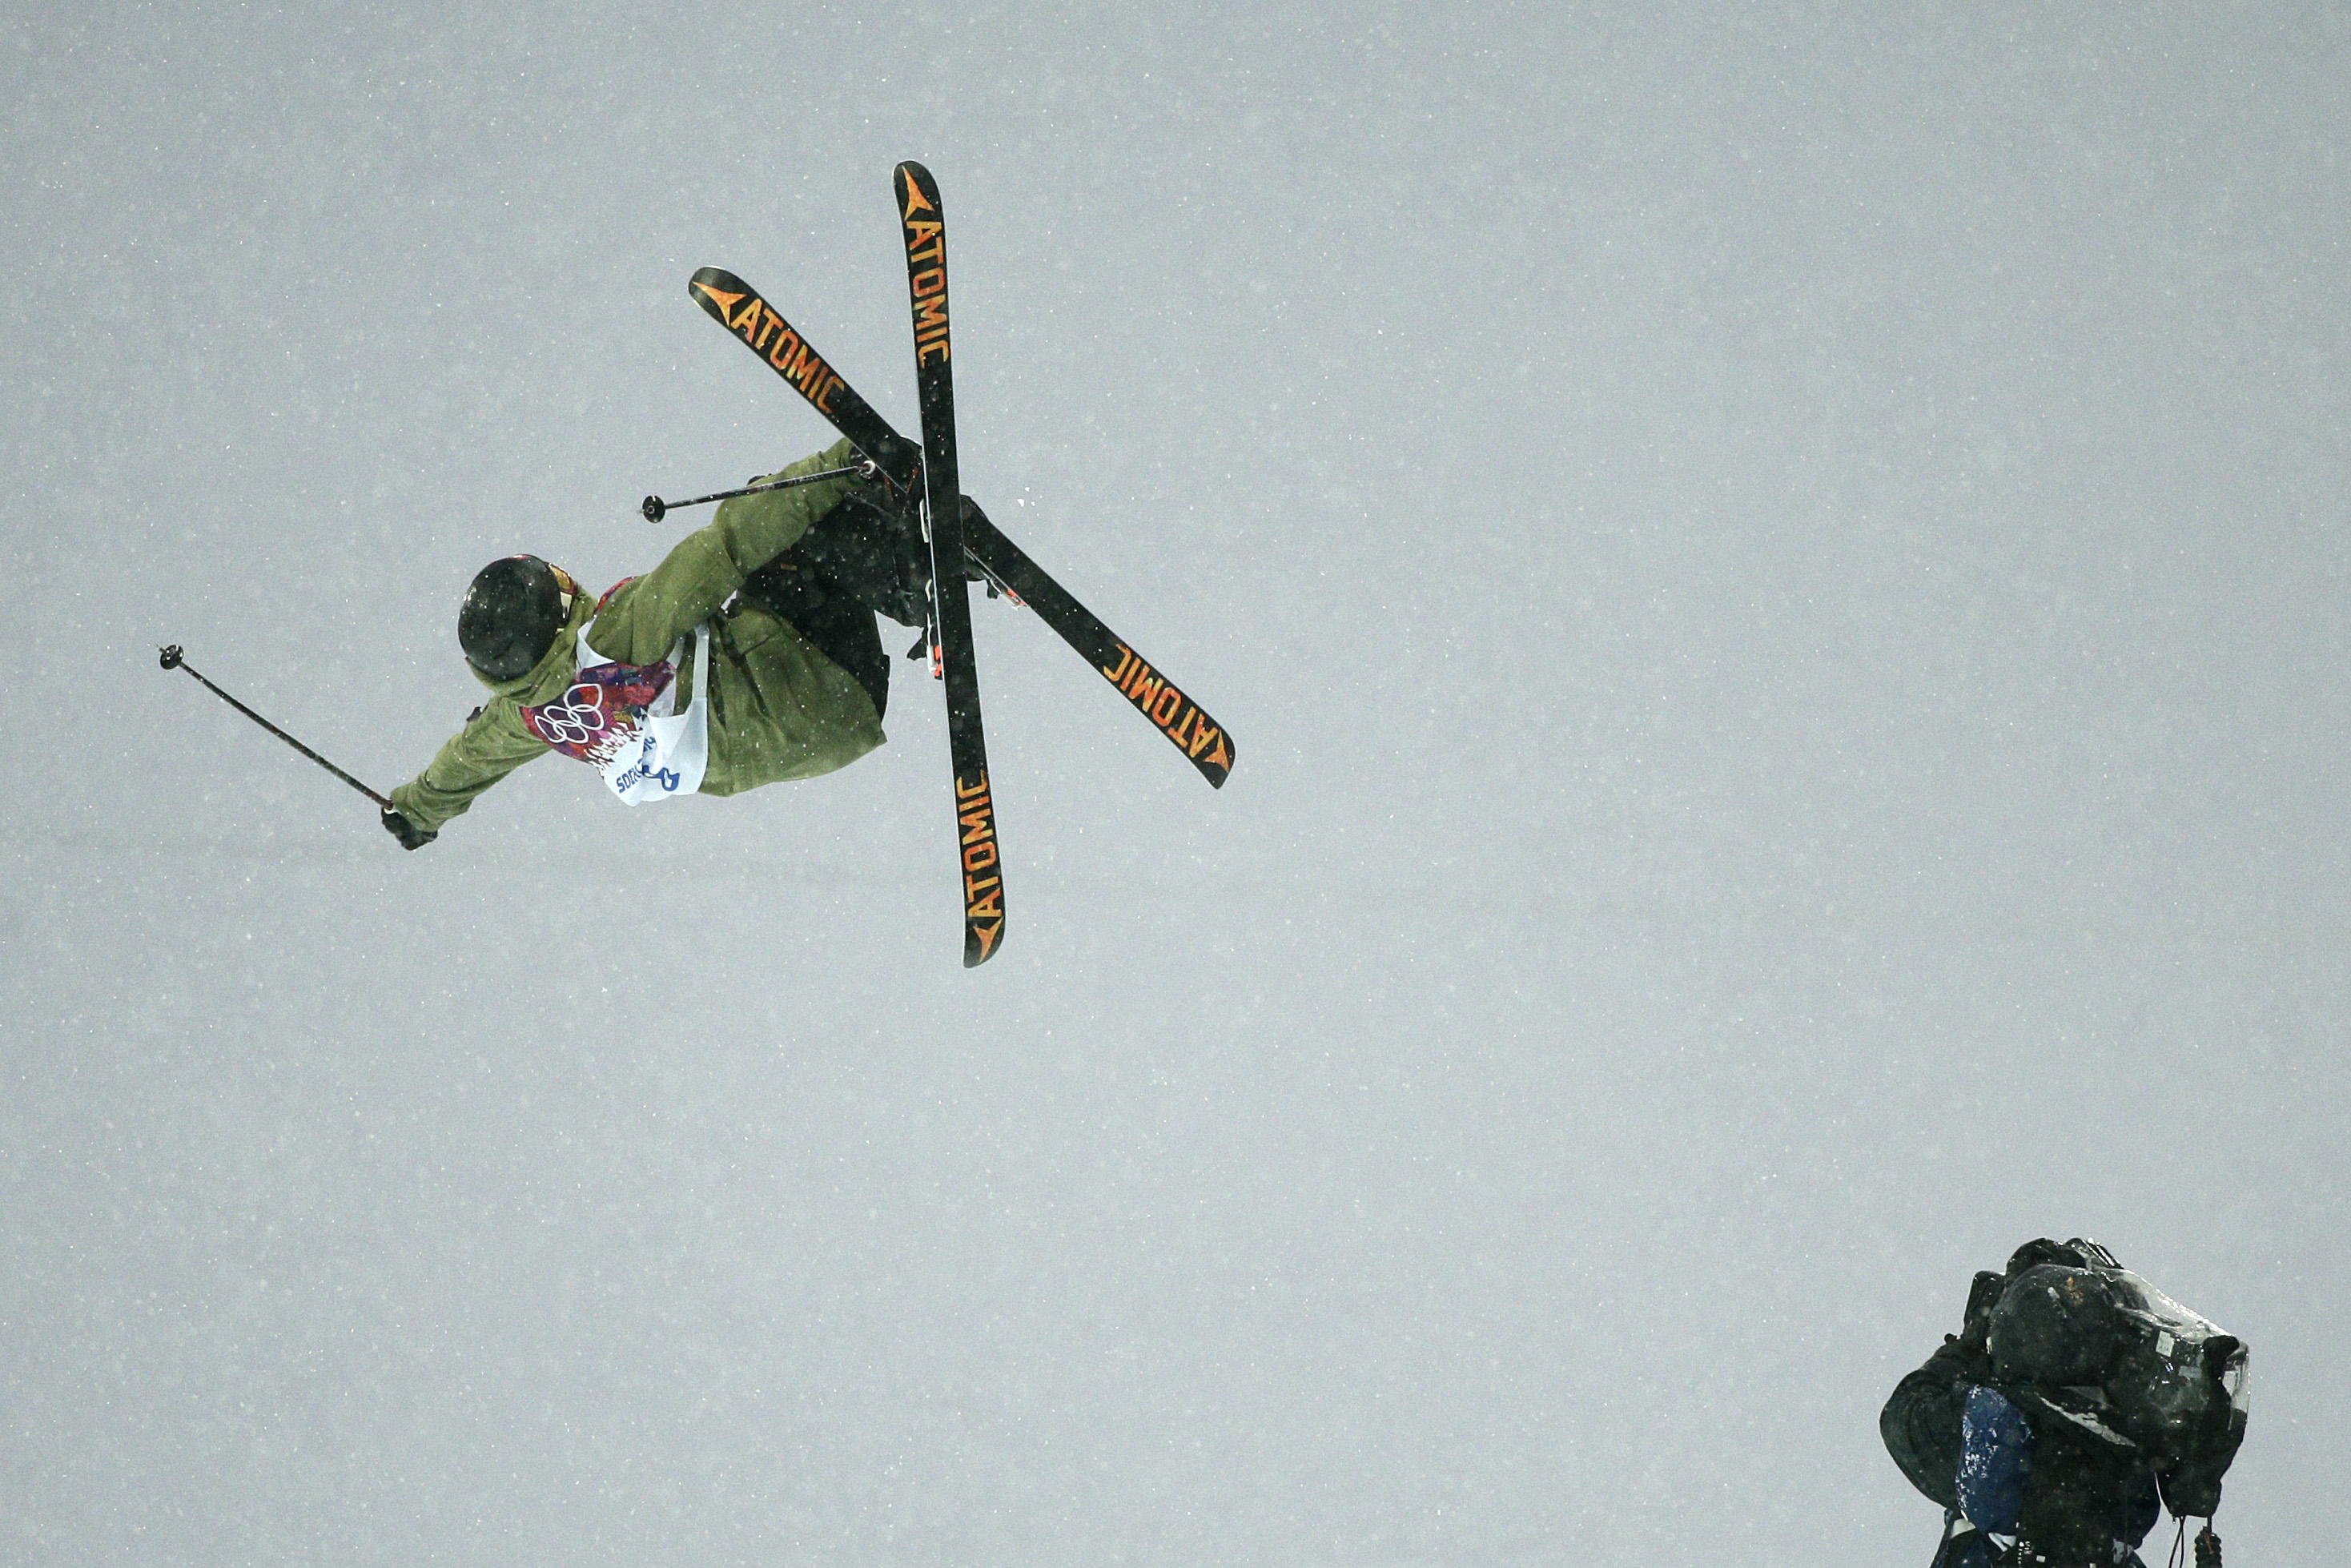 Switzerland's Yannic Lerjen catches air as he competes during the men's freestyle skiing halfpipe qualification at the Rosa Khutor Extreme Park, at the 2014 Winter Olympics, Tuesday, Feb. 18, 2014, in Krasnaya Polyana, Russia. (AP Photo/Jae C. Hong)